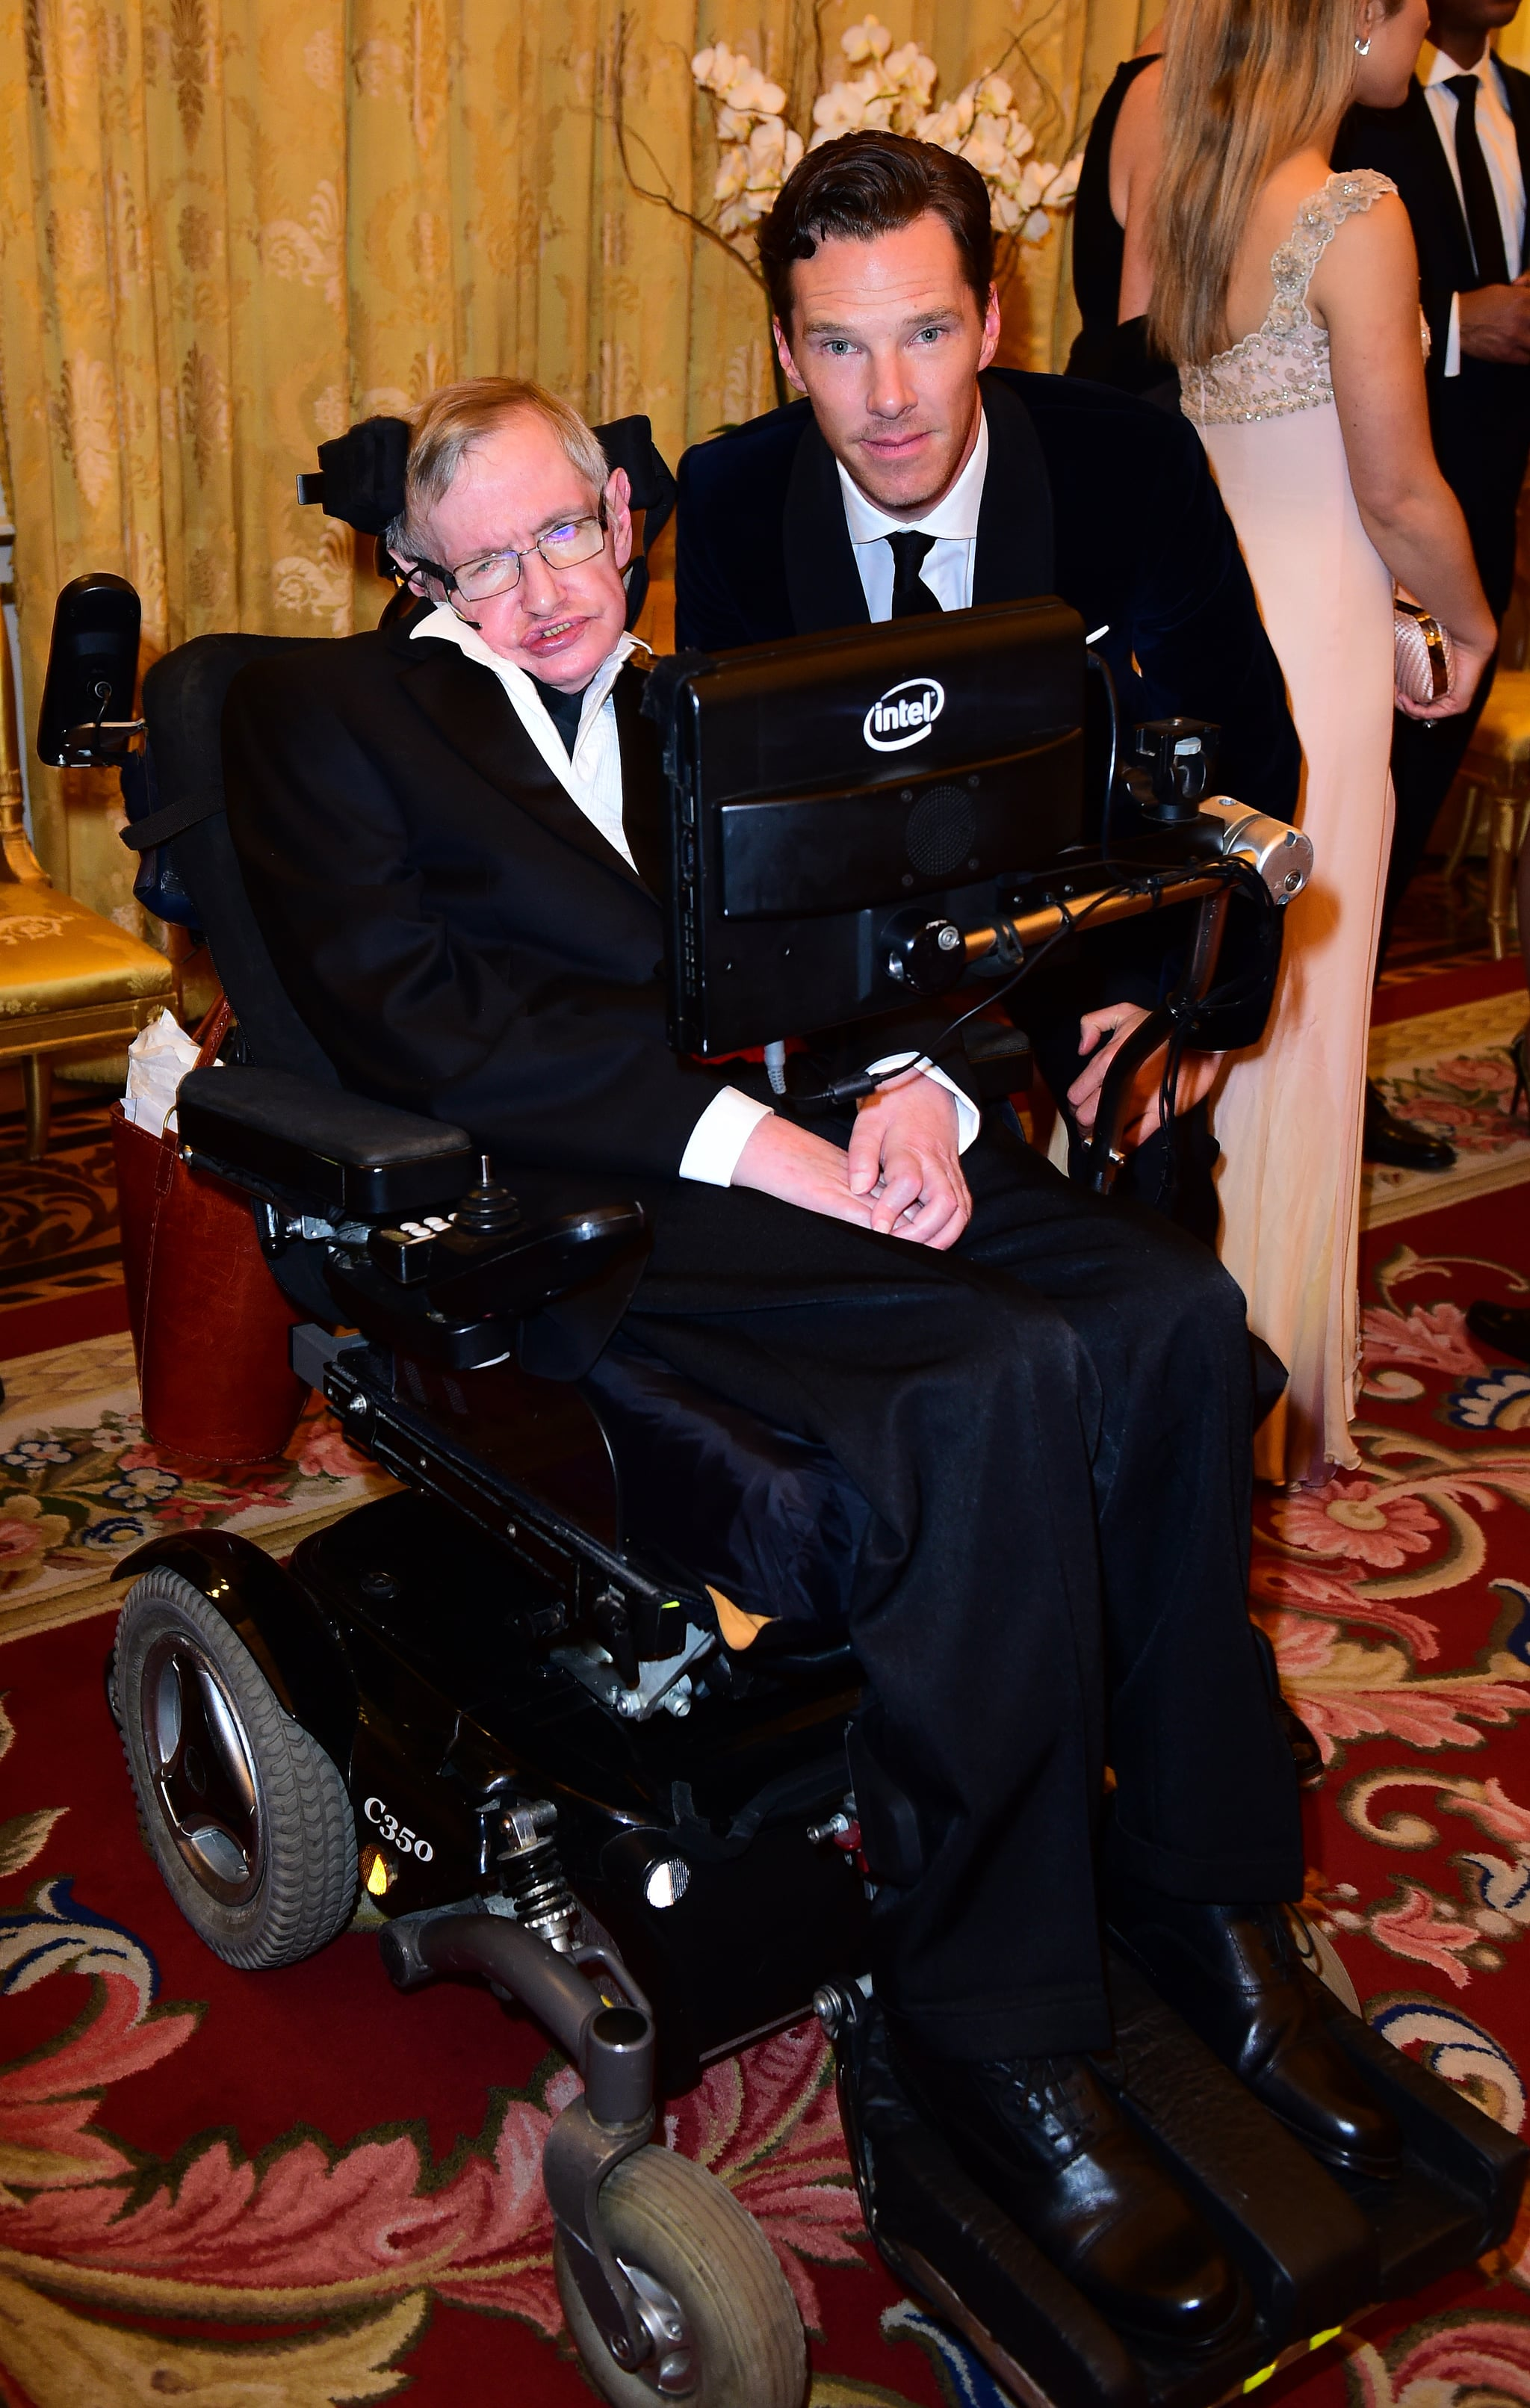 LONDON, ENGLAND - MARCH 10:  Professor Stephen Hawking and Benedict Cumberbatch attending a reception and dinner, in support of Motor Neurone Disease Association at Buckingham Palace on March 10, 2015 in London, United Kingdom. (Photo by Ian West - WPA Pool/Getty Images)